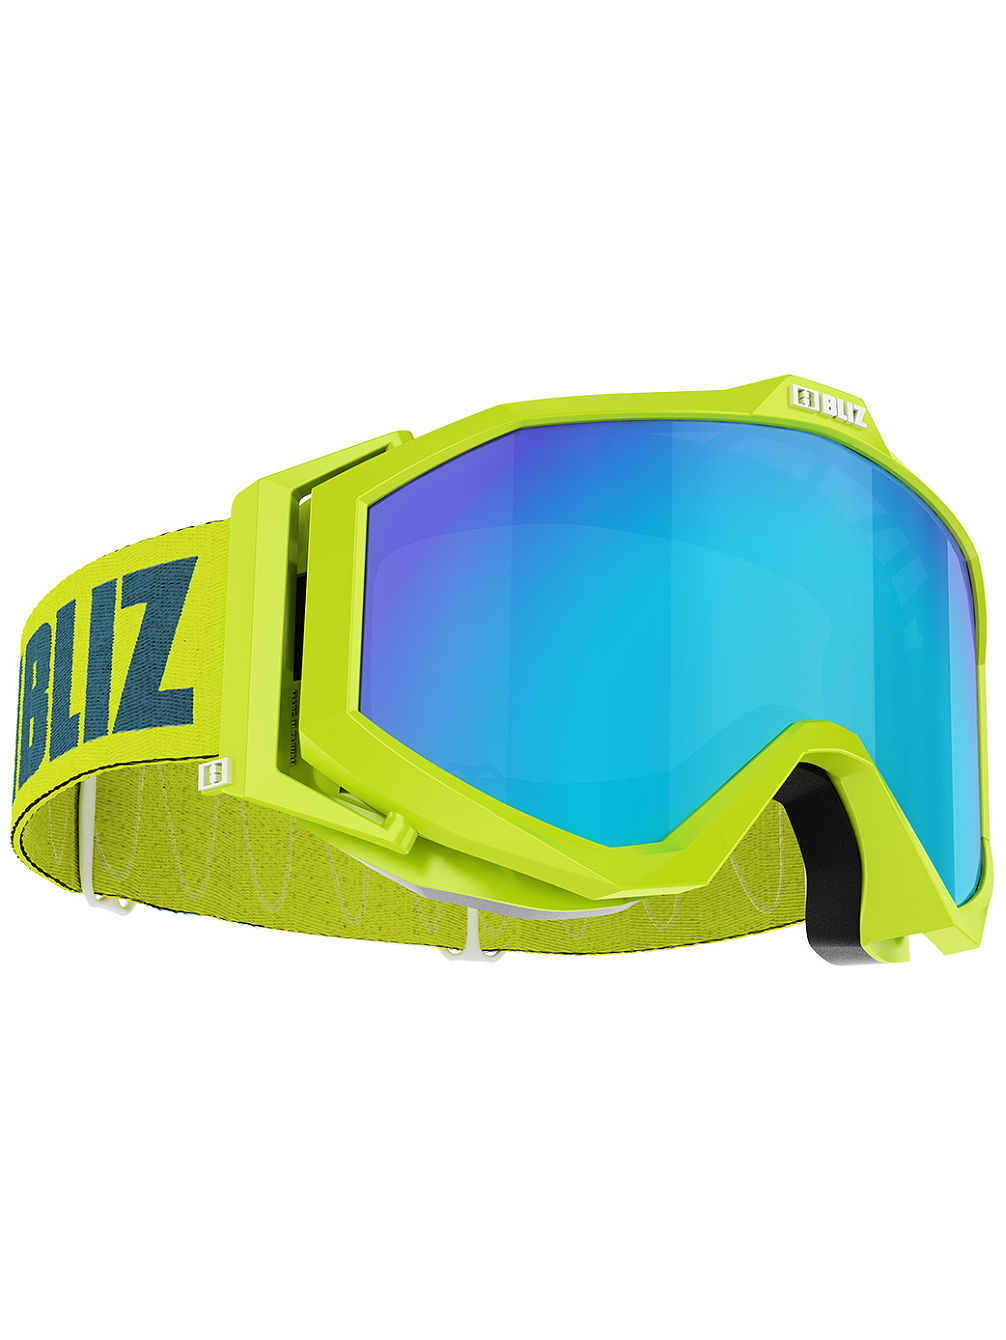 bliz-protective-sports-gear-edge-lime-green